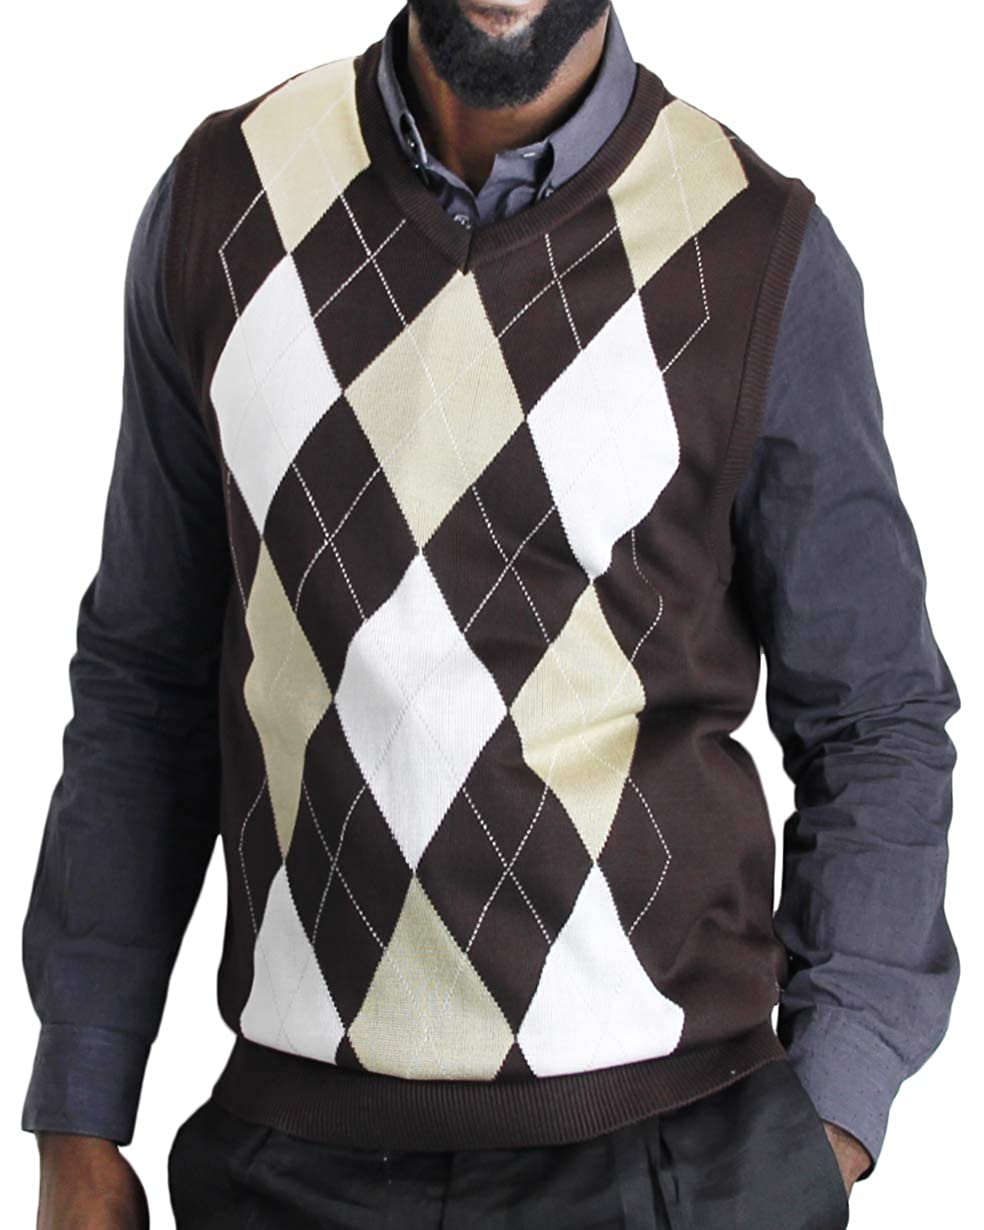 1920s Style Mens Vests Blue Ocean Argyle Sweater Vest $25.50 AT vintagedancer.com